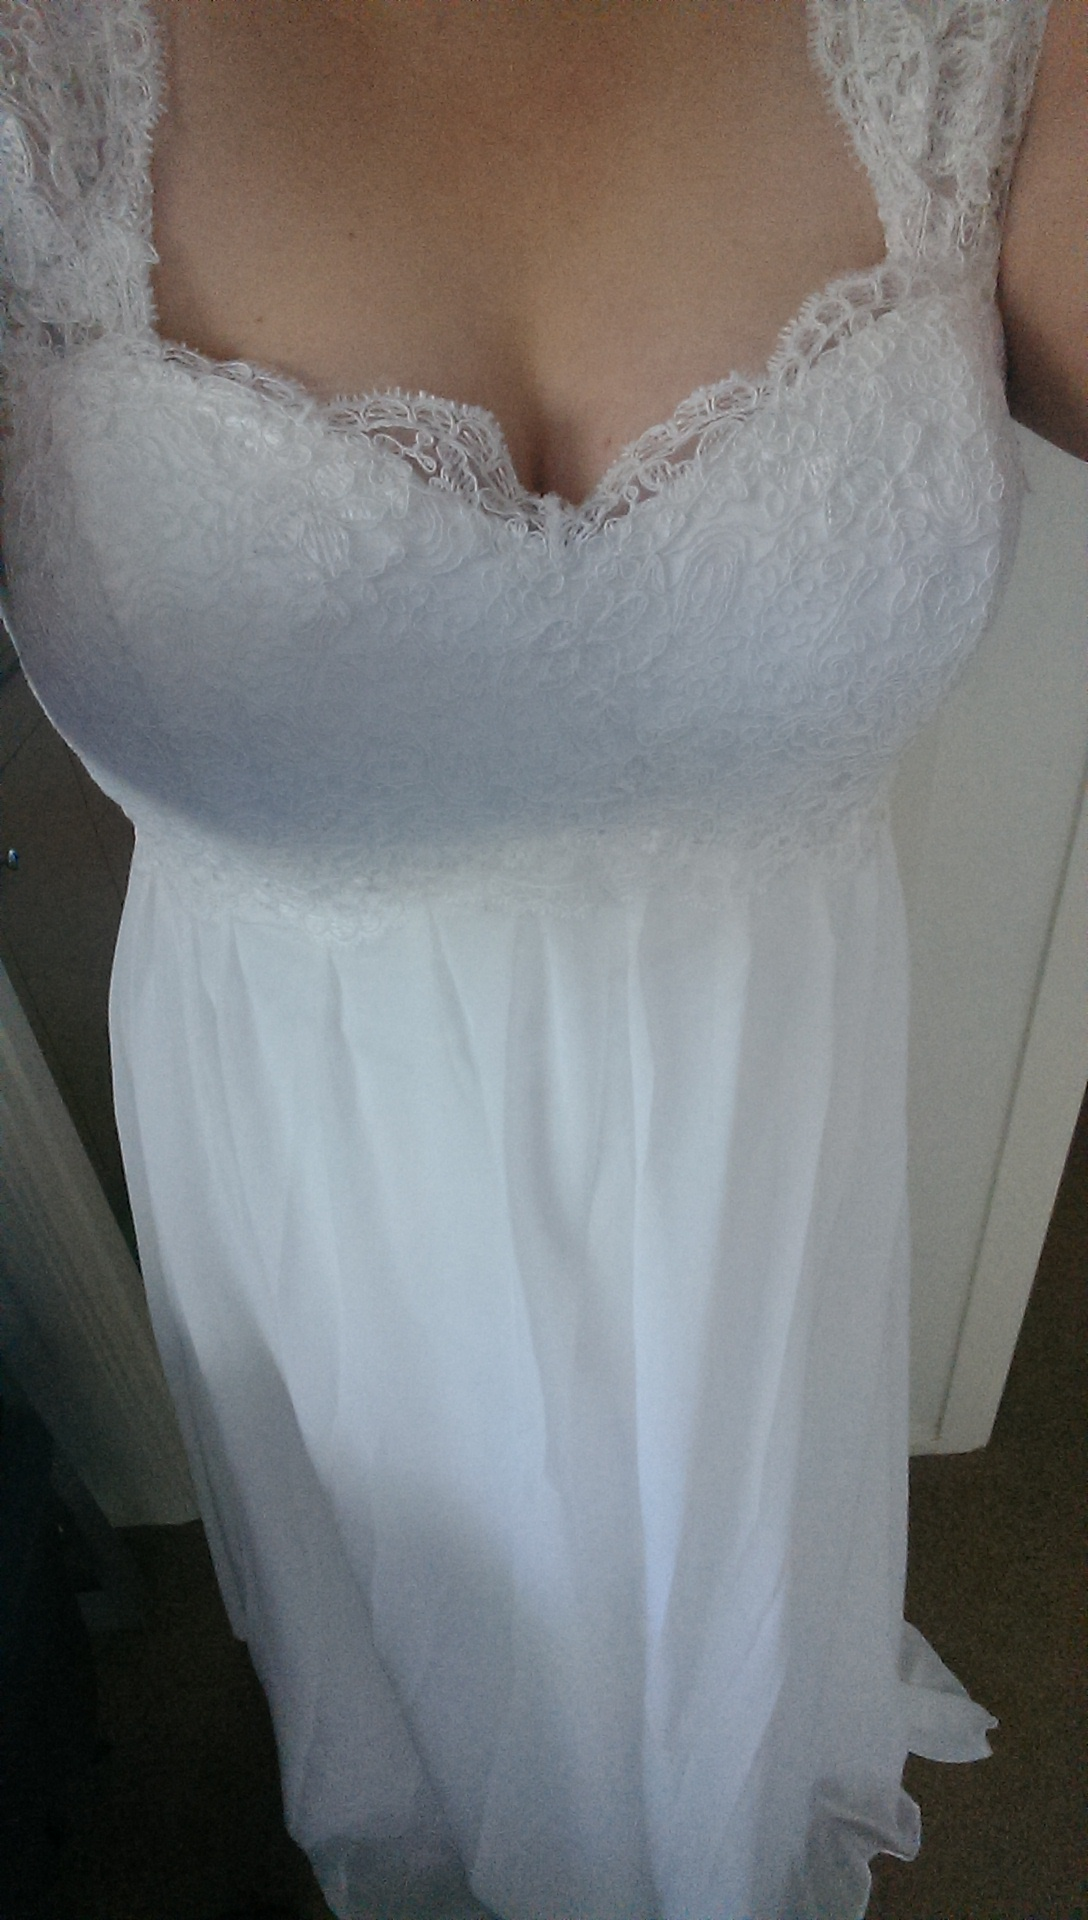 calling all ebay wedding dresses ebay wedding dress My dress is from China I ordered mine from eBay The dress was one they designed themselves it took under three weeks to make and arrive